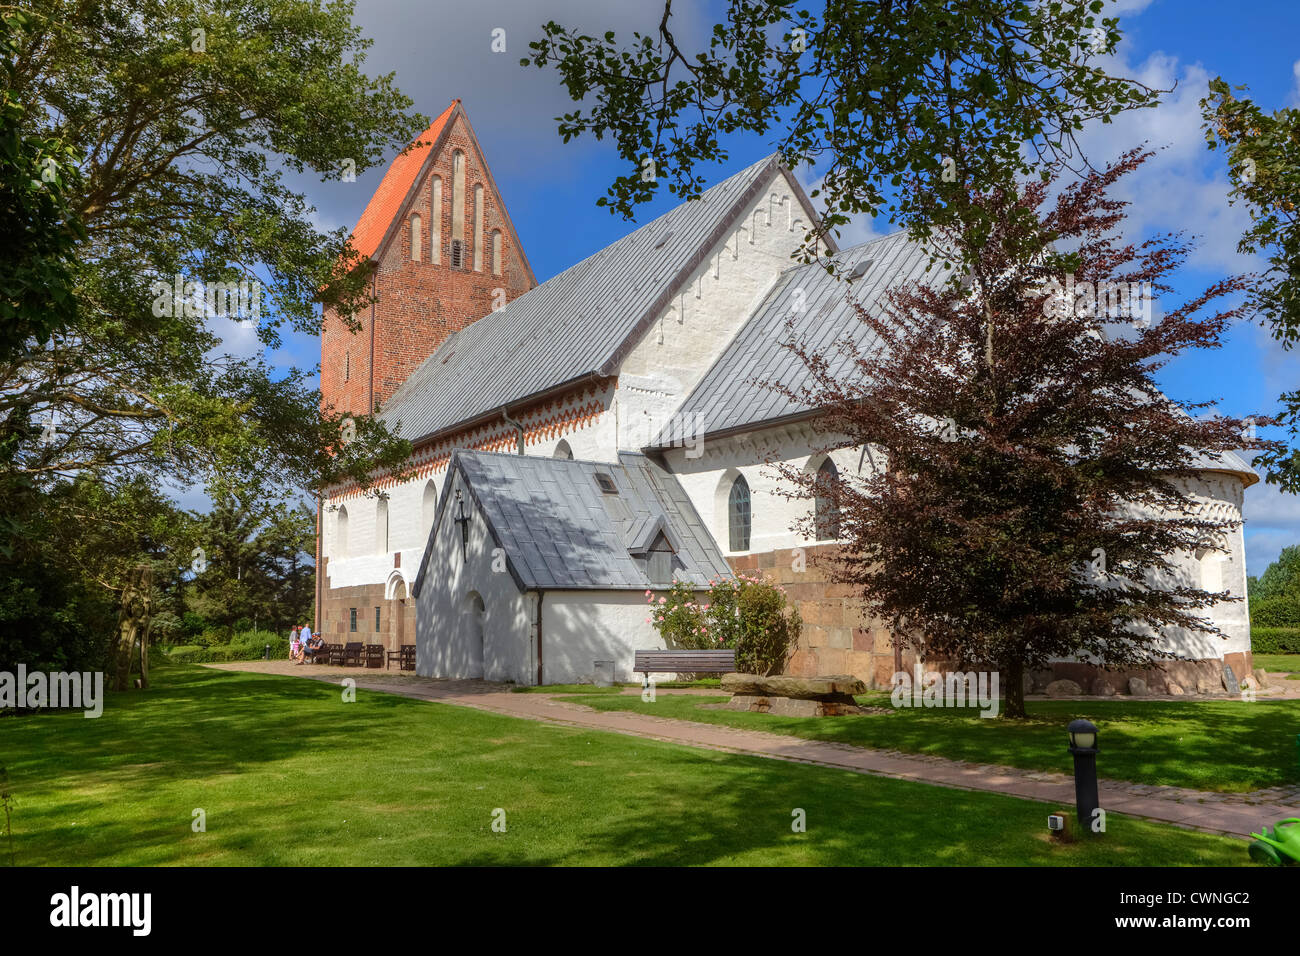 st severin church keitum sylt schleswig holstein germany stock photo 50261010 alamy. Black Bedroom Furniture Sets. Home Design Ideas